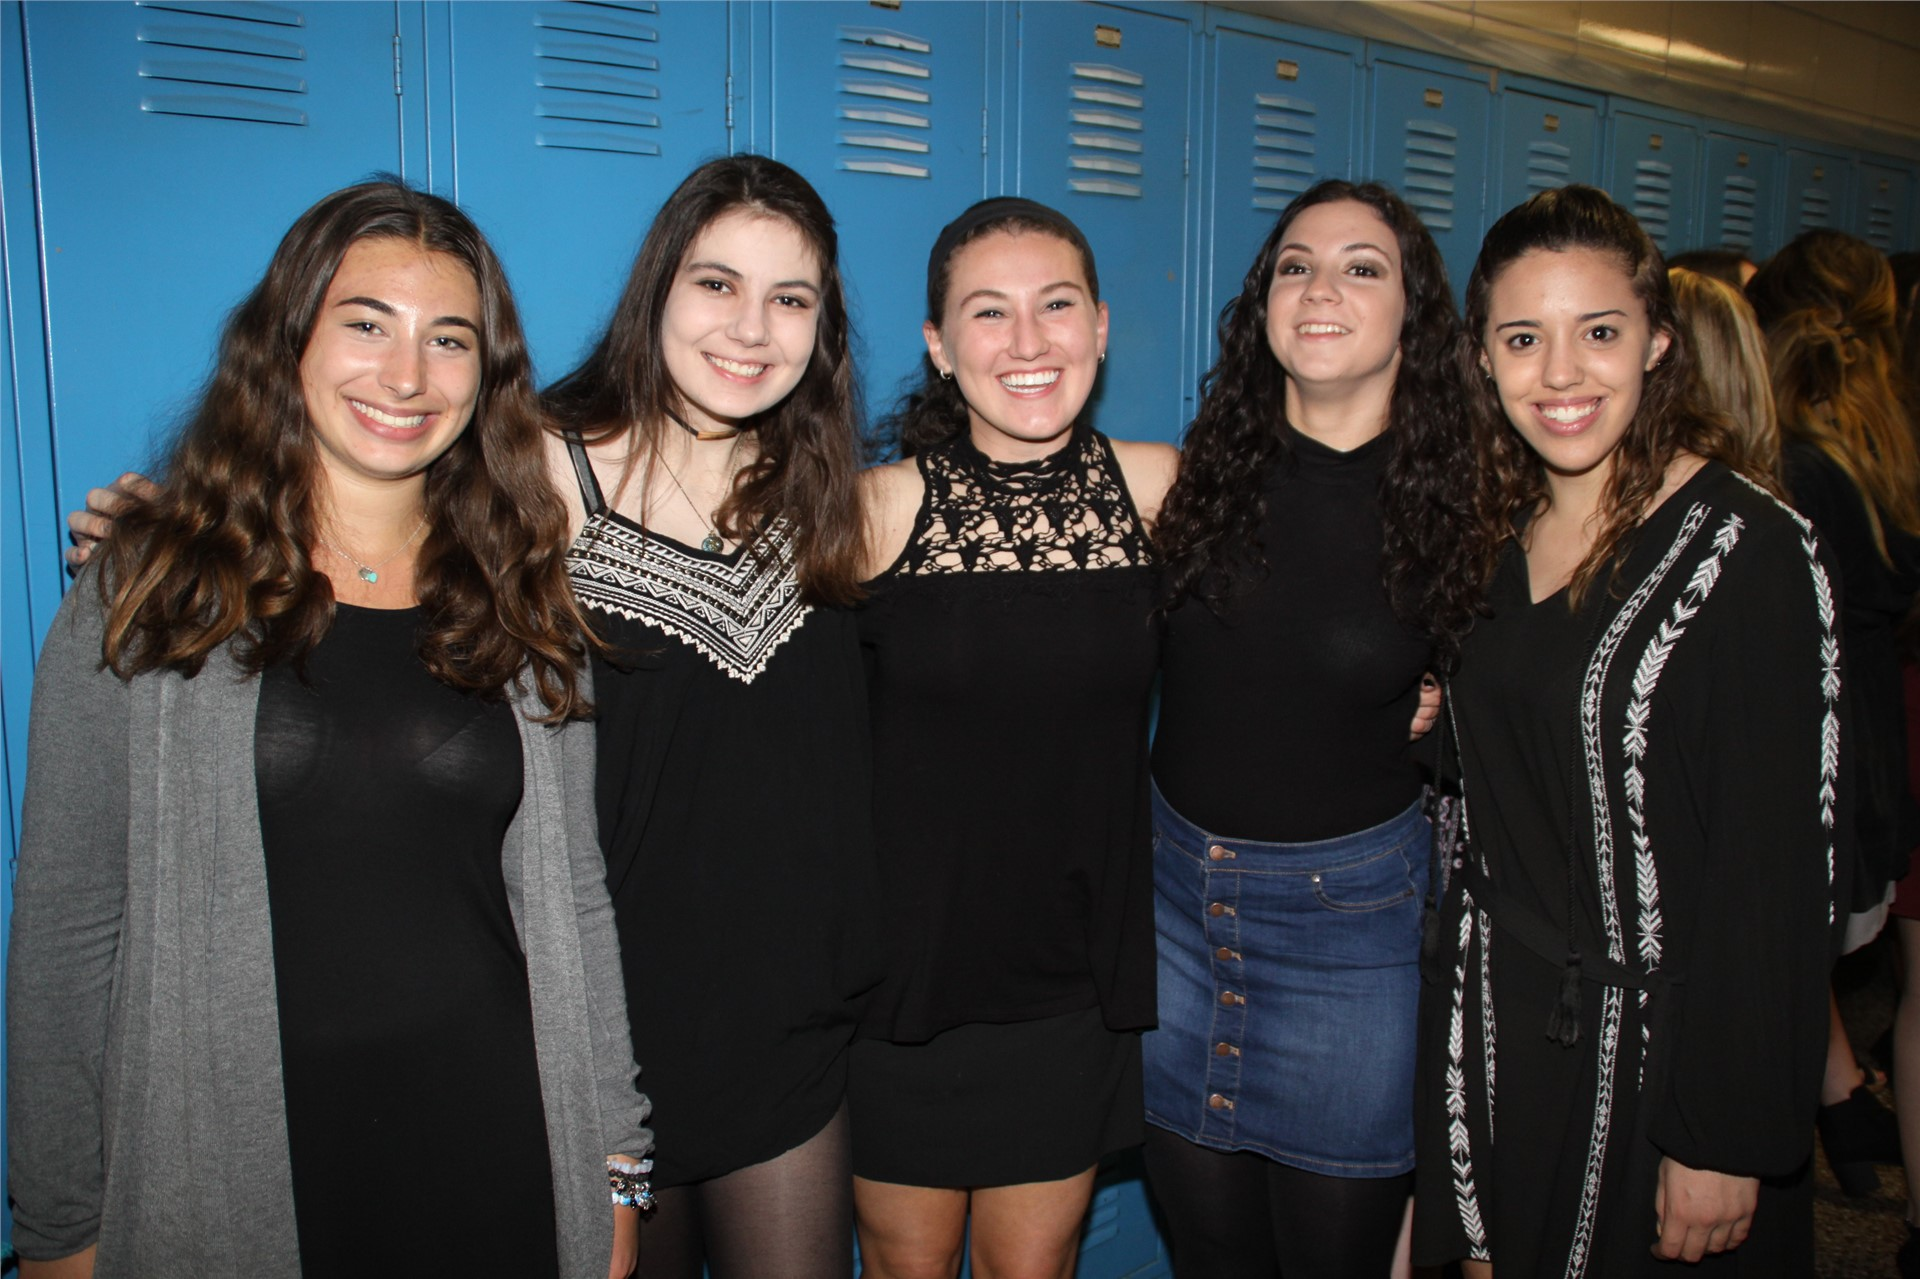 National Honor Society Inductions 2017